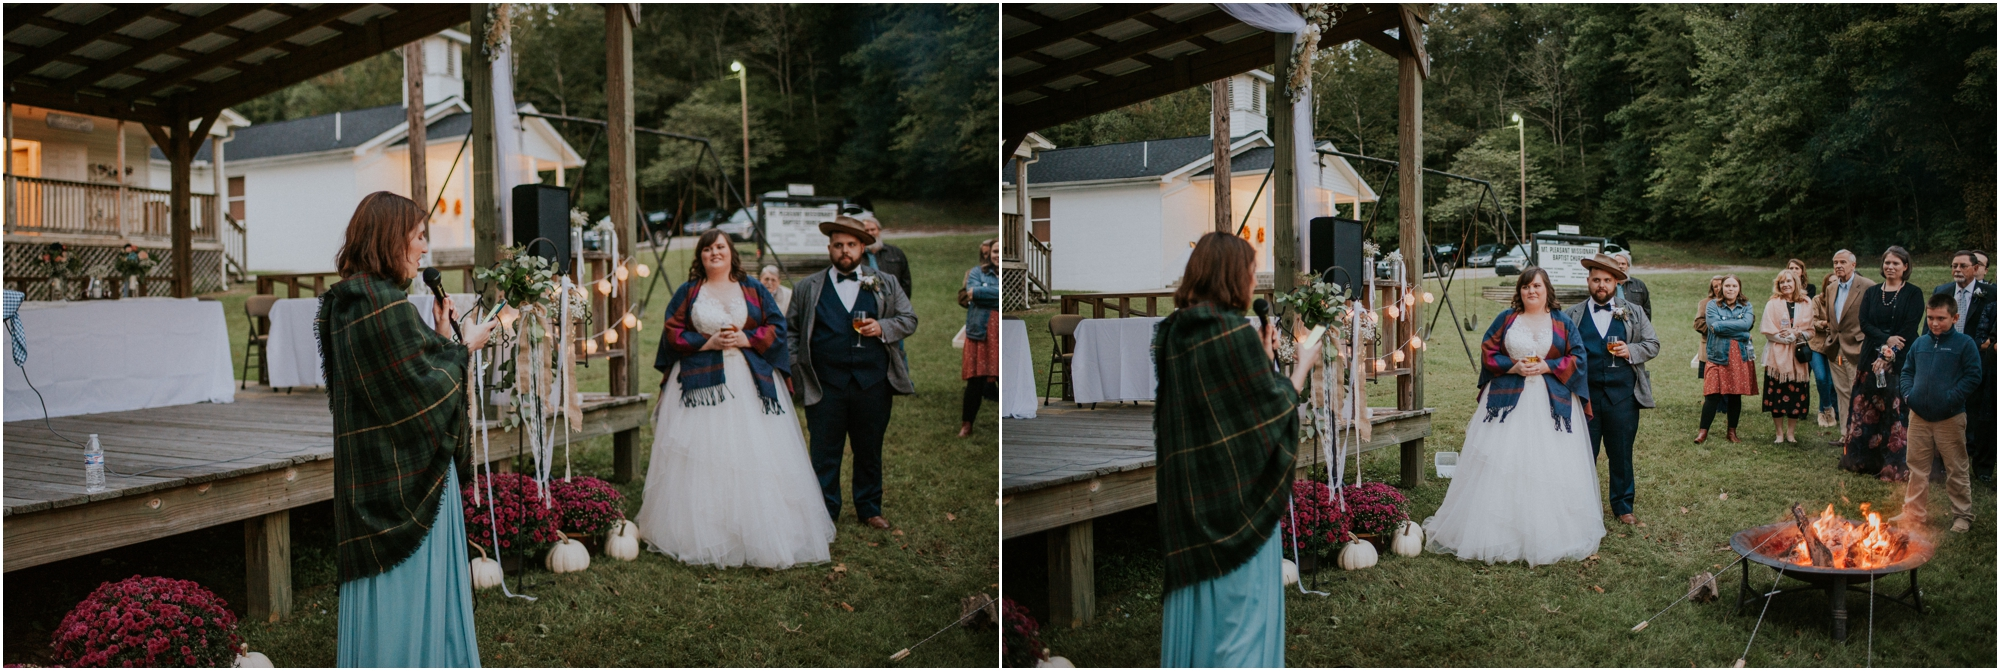 caryville-robbins-middle-tennessee-intimate-cozy-fall-navy-rustic-backyard-wedding_0135.jpg